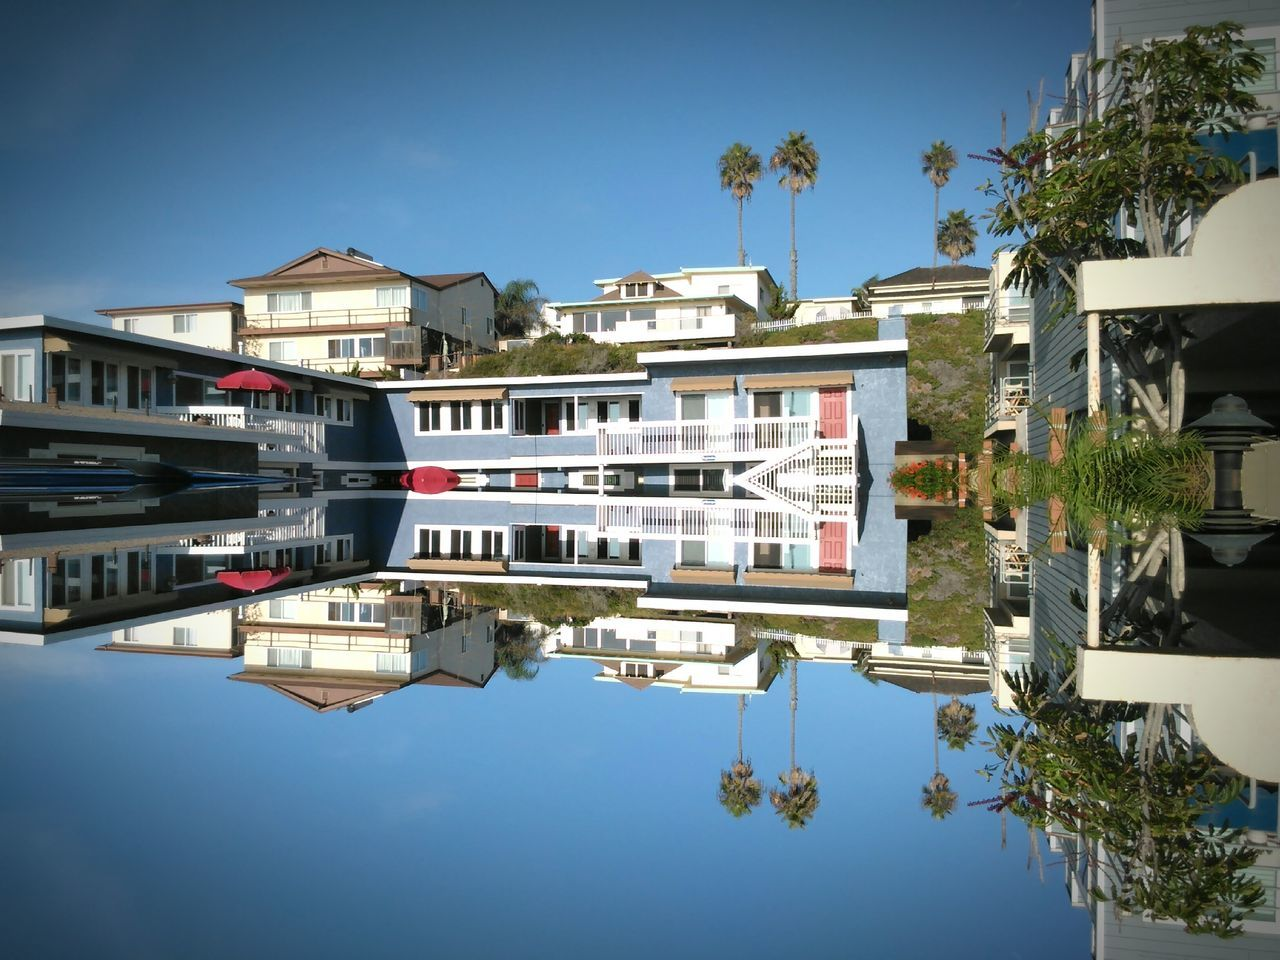 building exterior, architecture, built structure, clear sky, residential building, reflection, house, outdoors, day, waterfront, tree, water, no people, sky, city